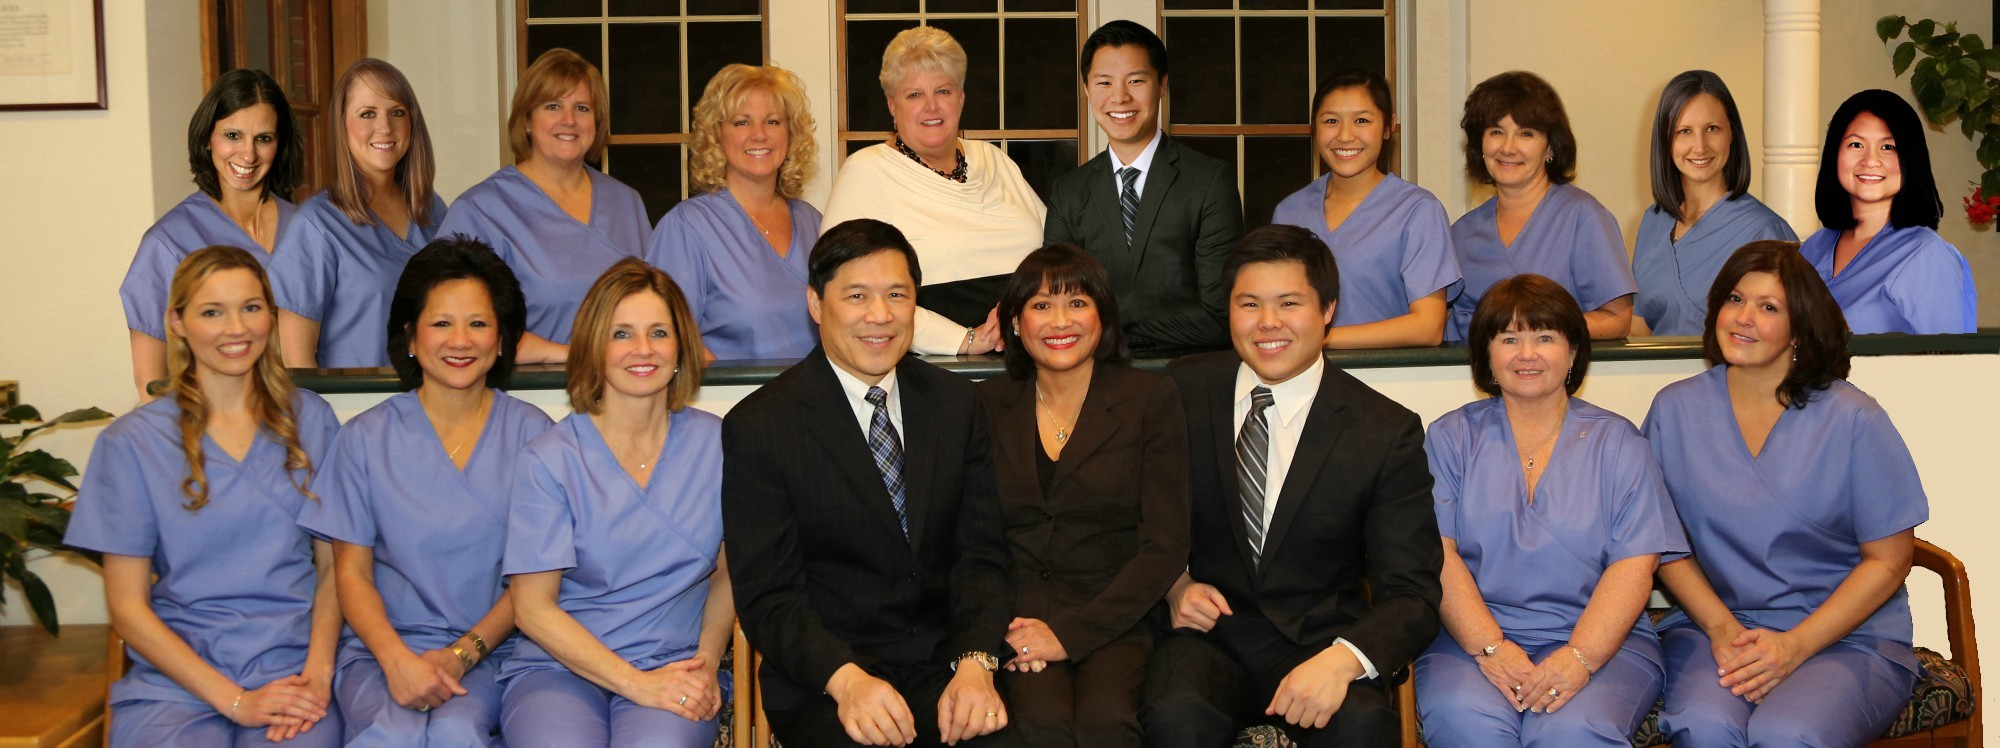 Pan Dental Care team in Melrose, MA